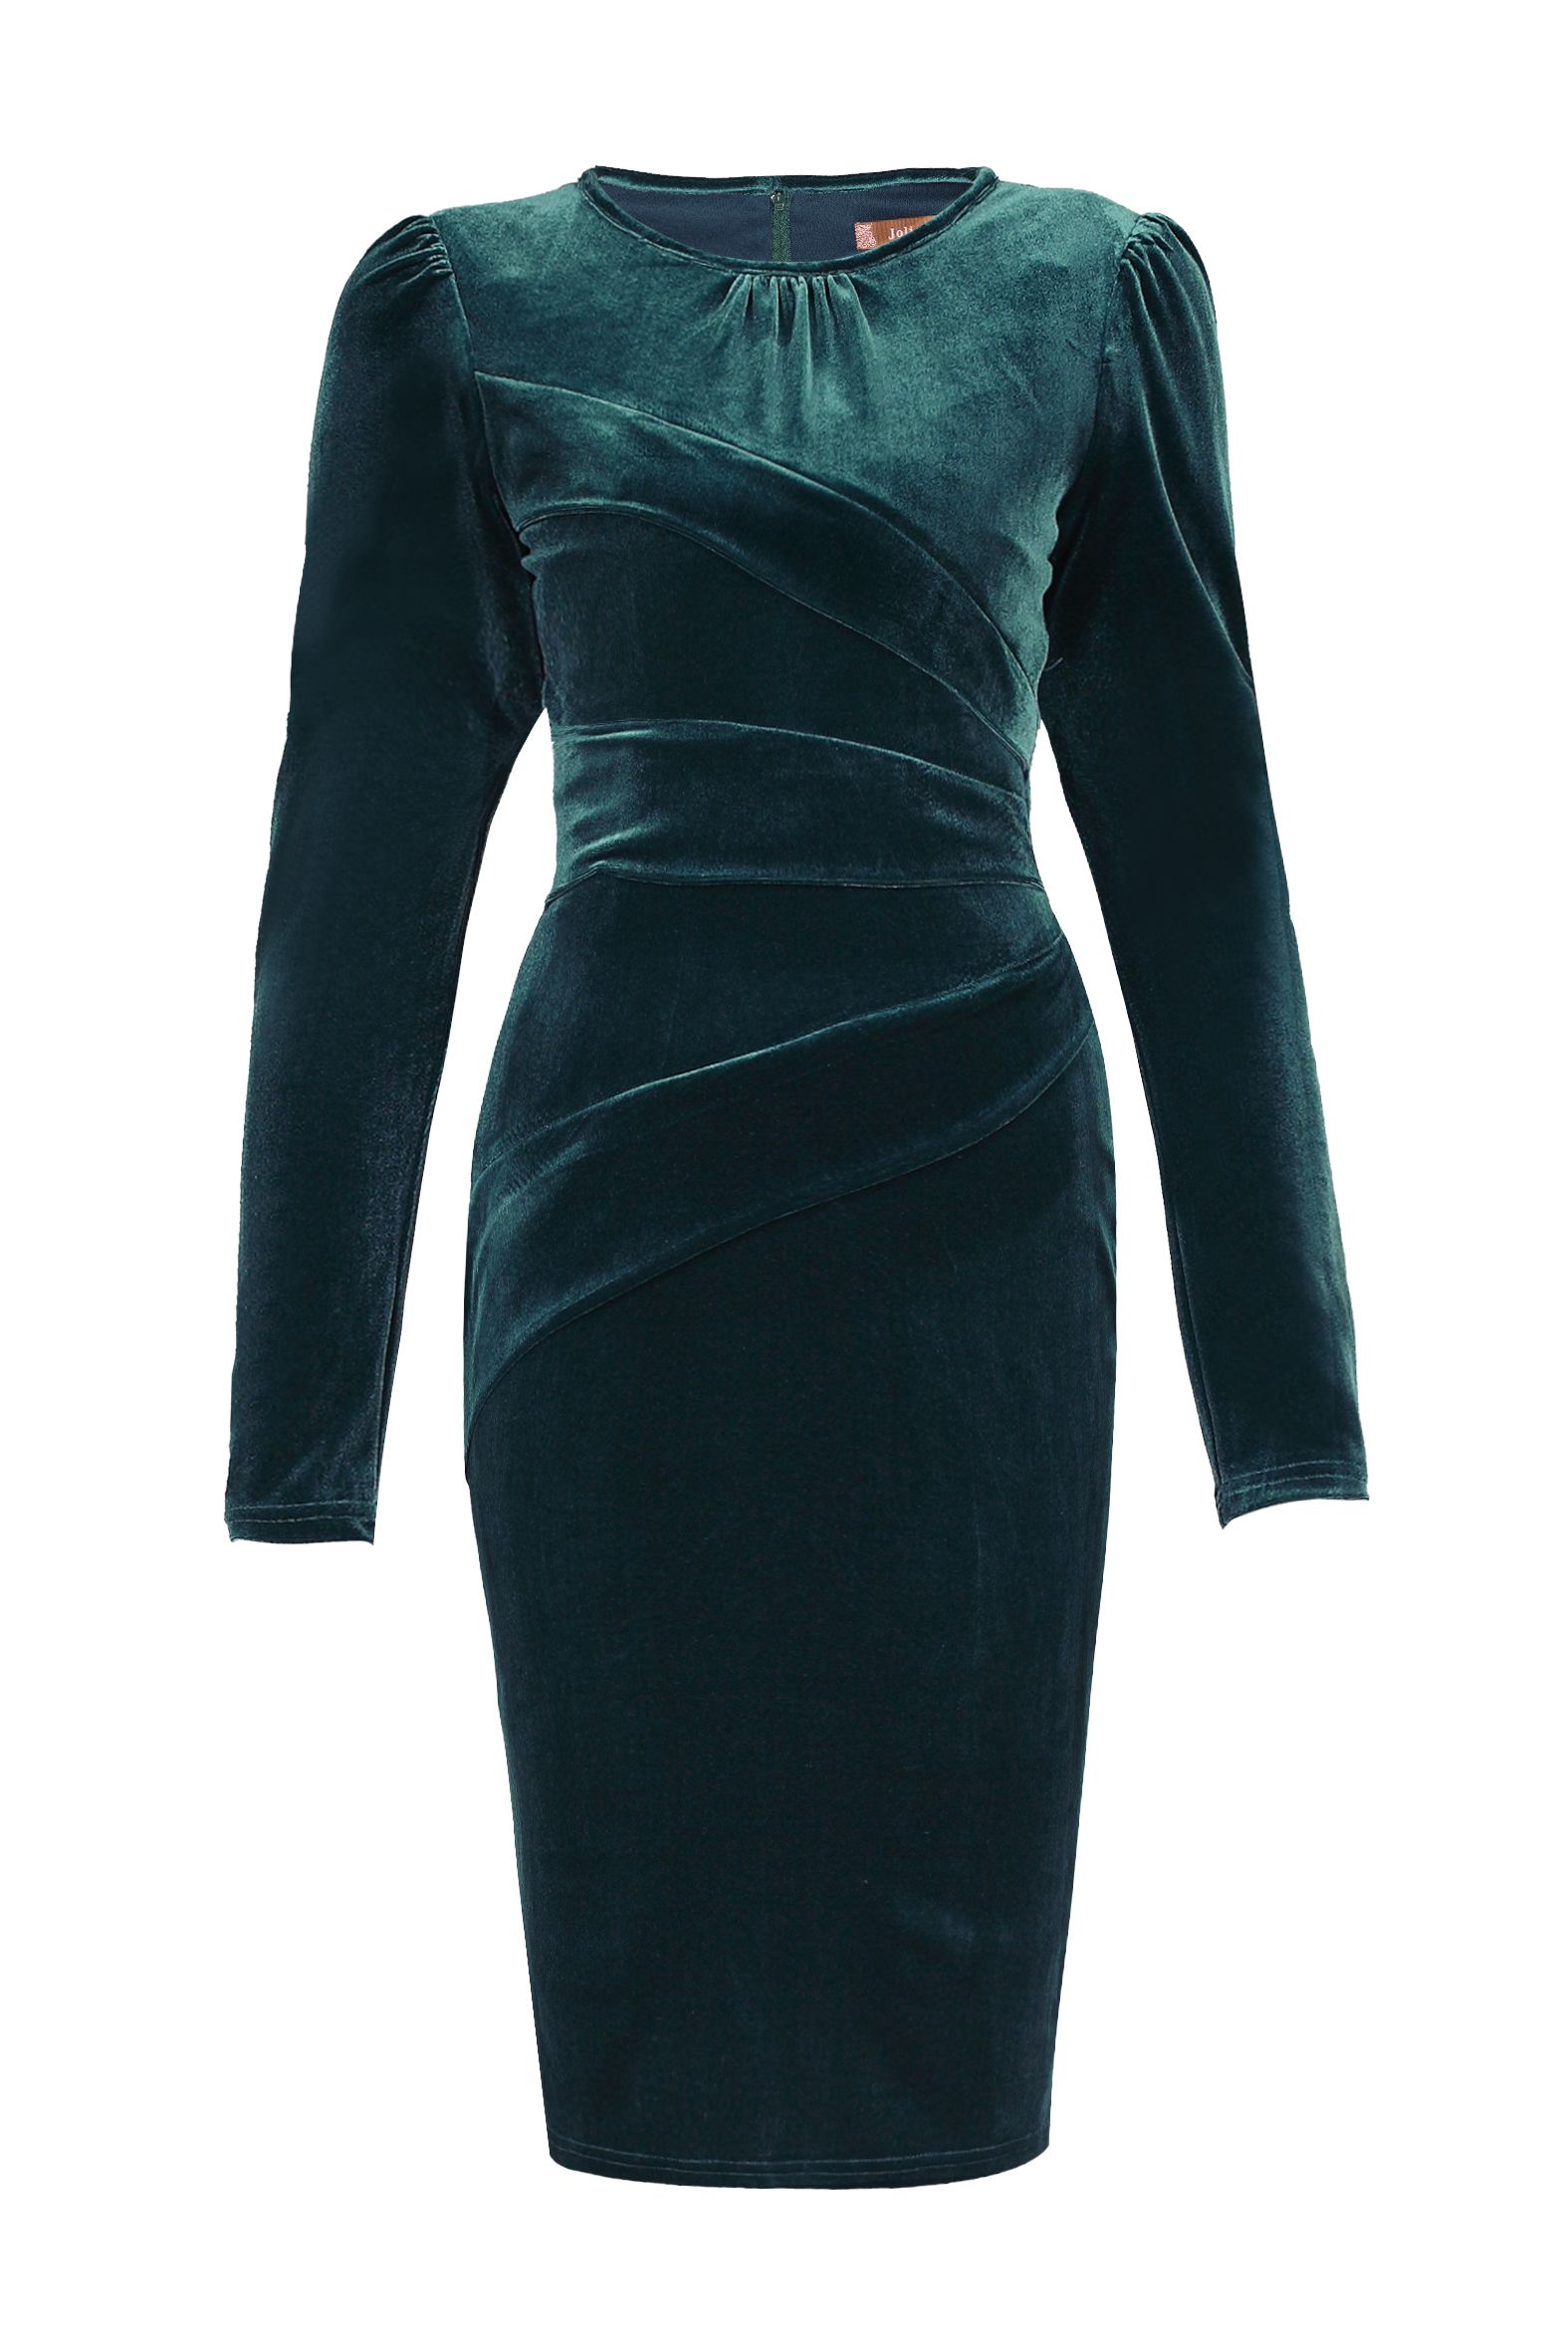 Jolie Moi Asymmetrical Fold Bodycon Dress, Teal